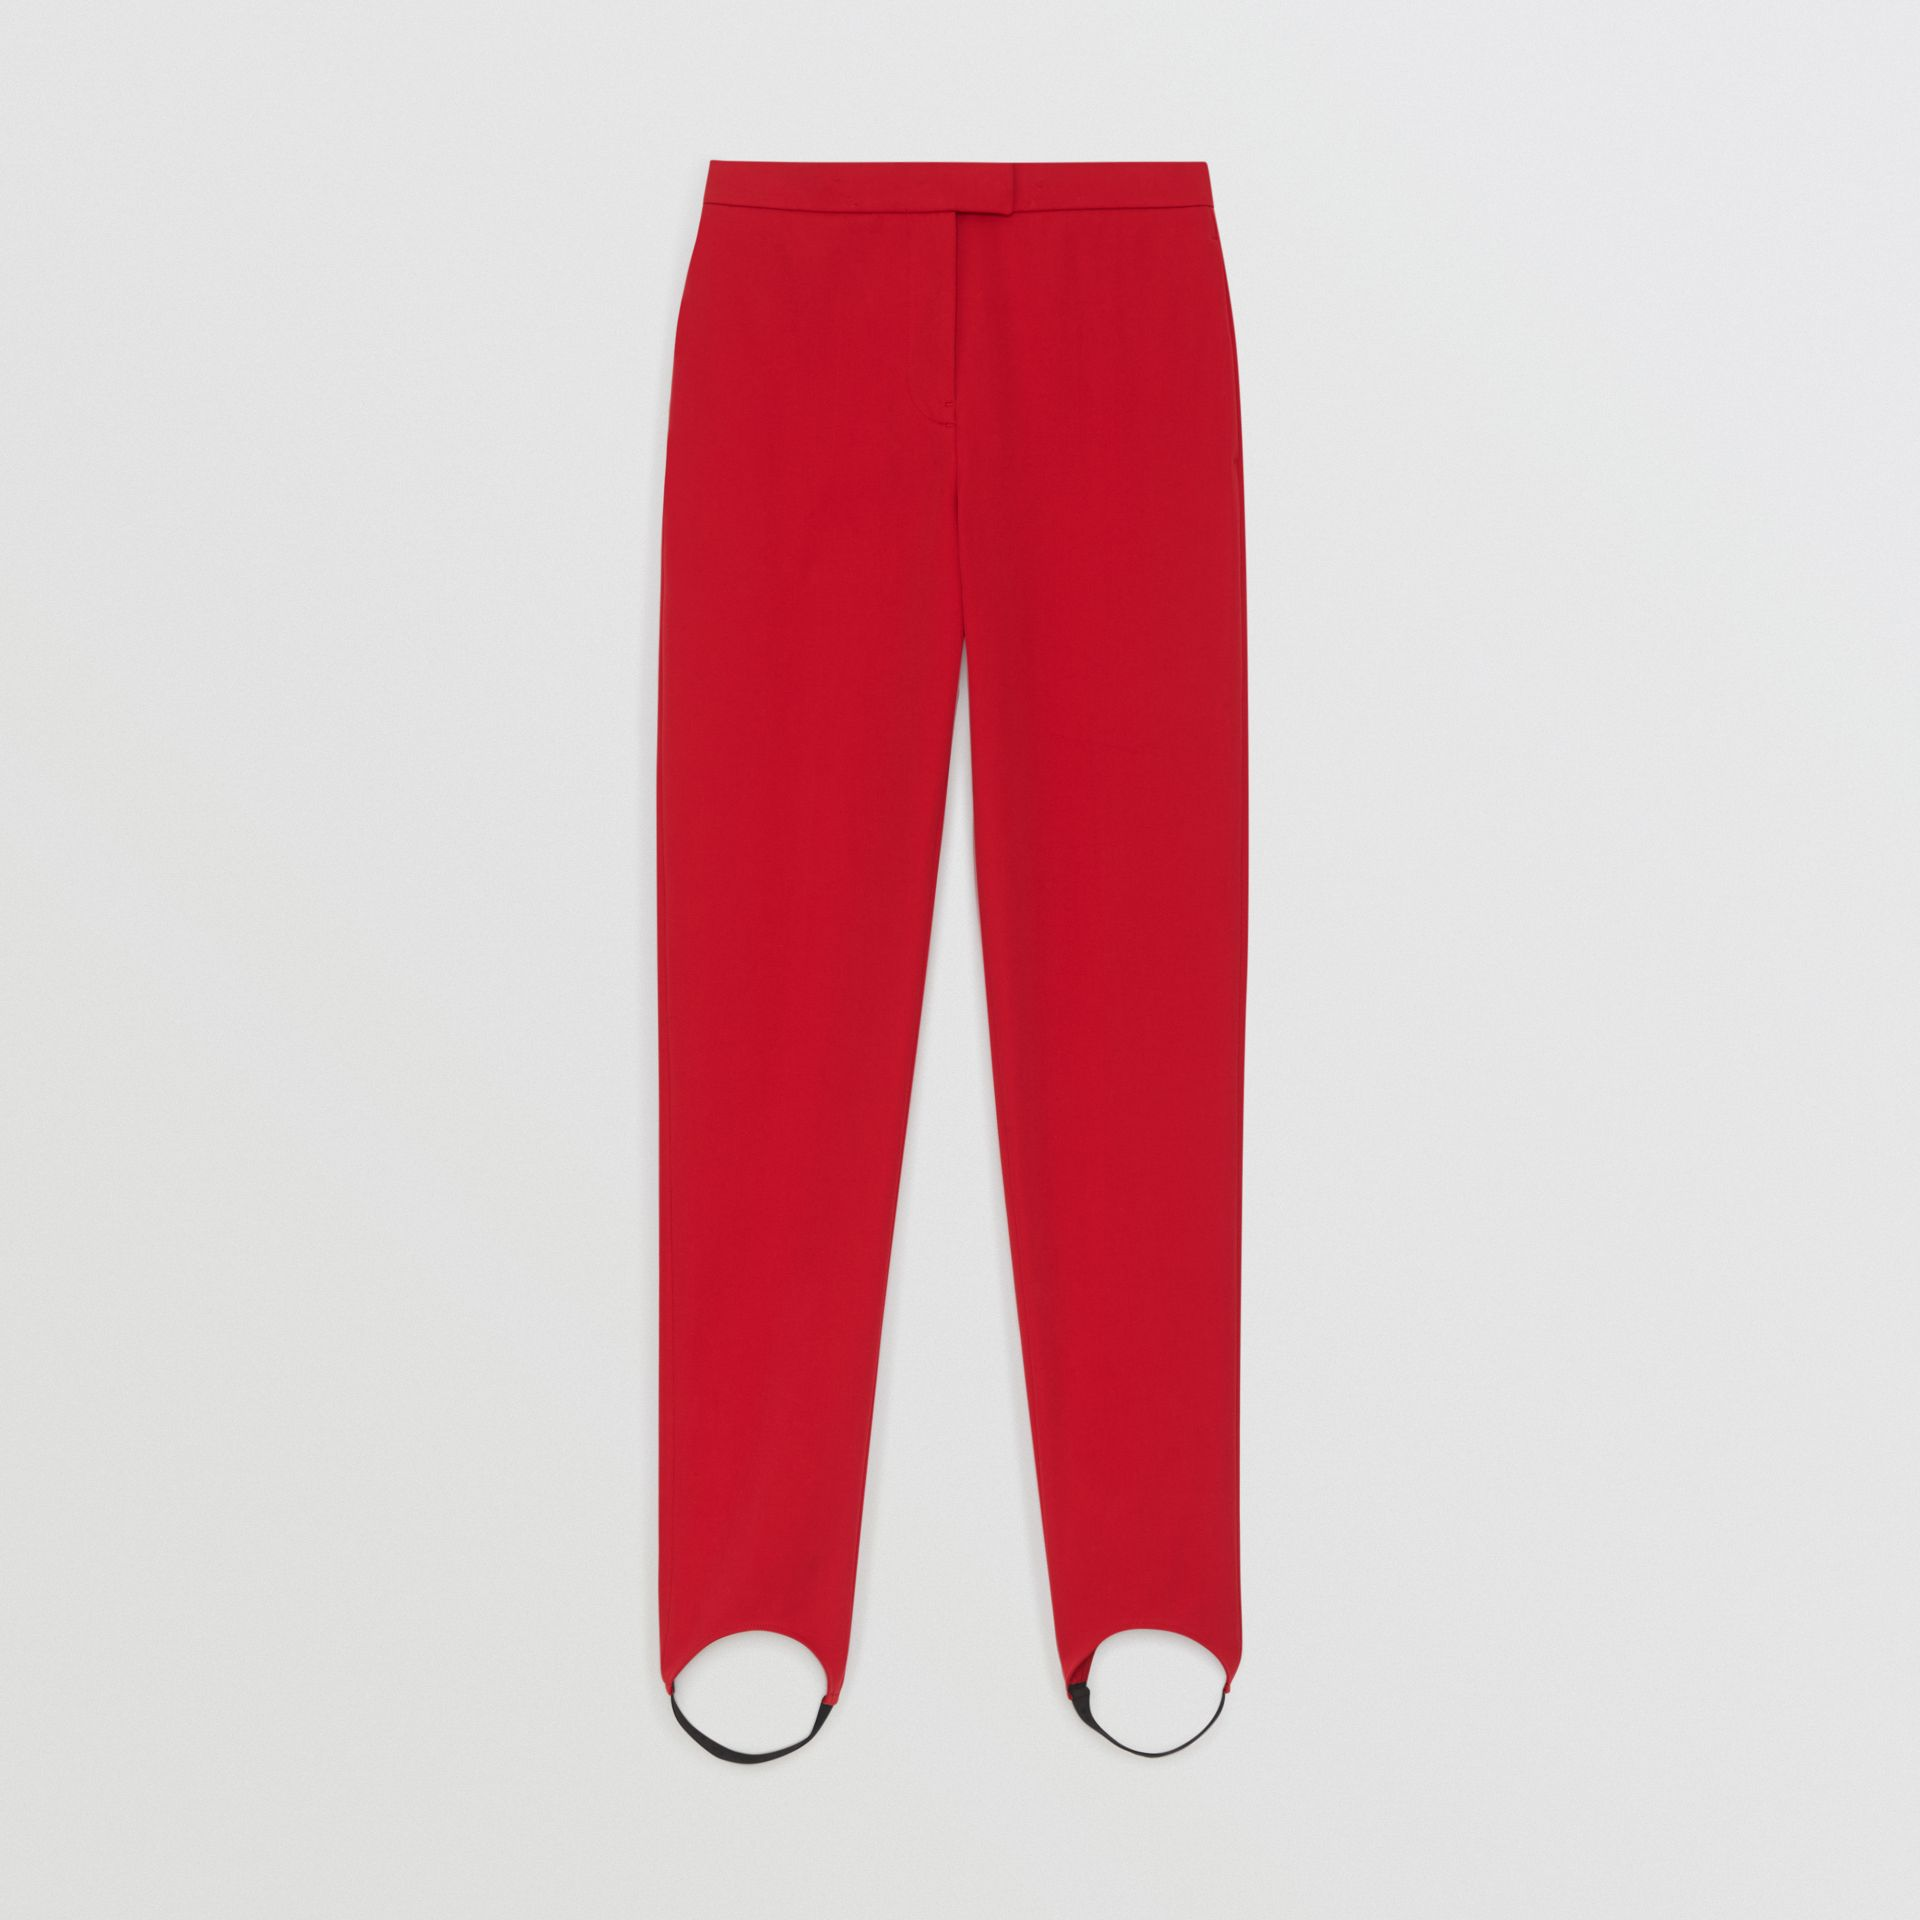 Long Cotton Blend Tailored Jodhpurs in Bright Red - Women | Burberry United Kingdom - gallery image 3